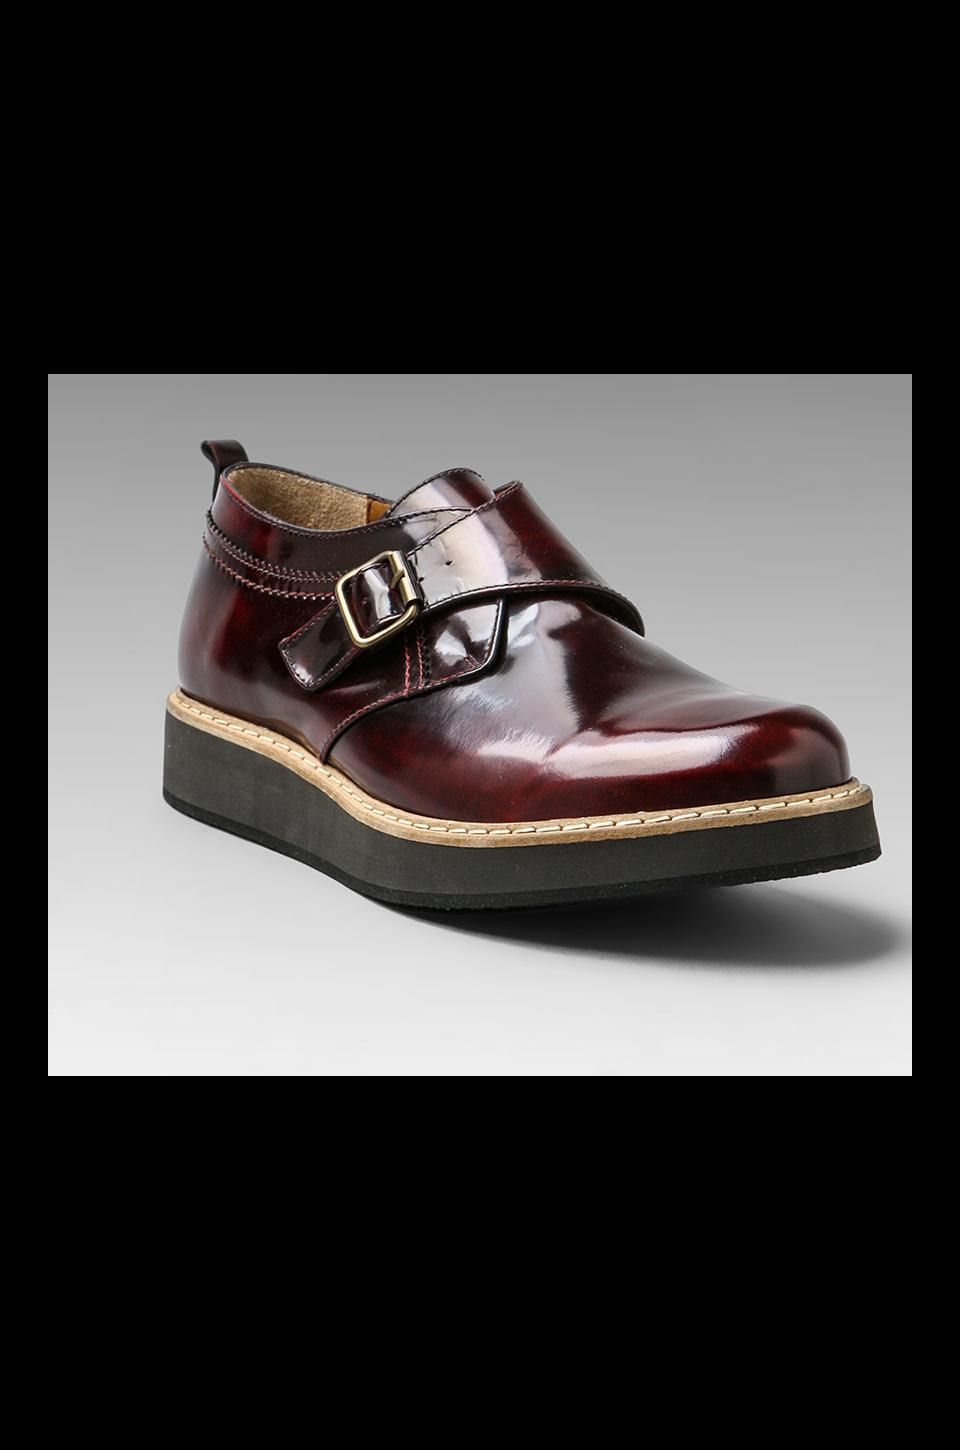 McQ Alexander McQueen Monk Short Boot in Oxblood